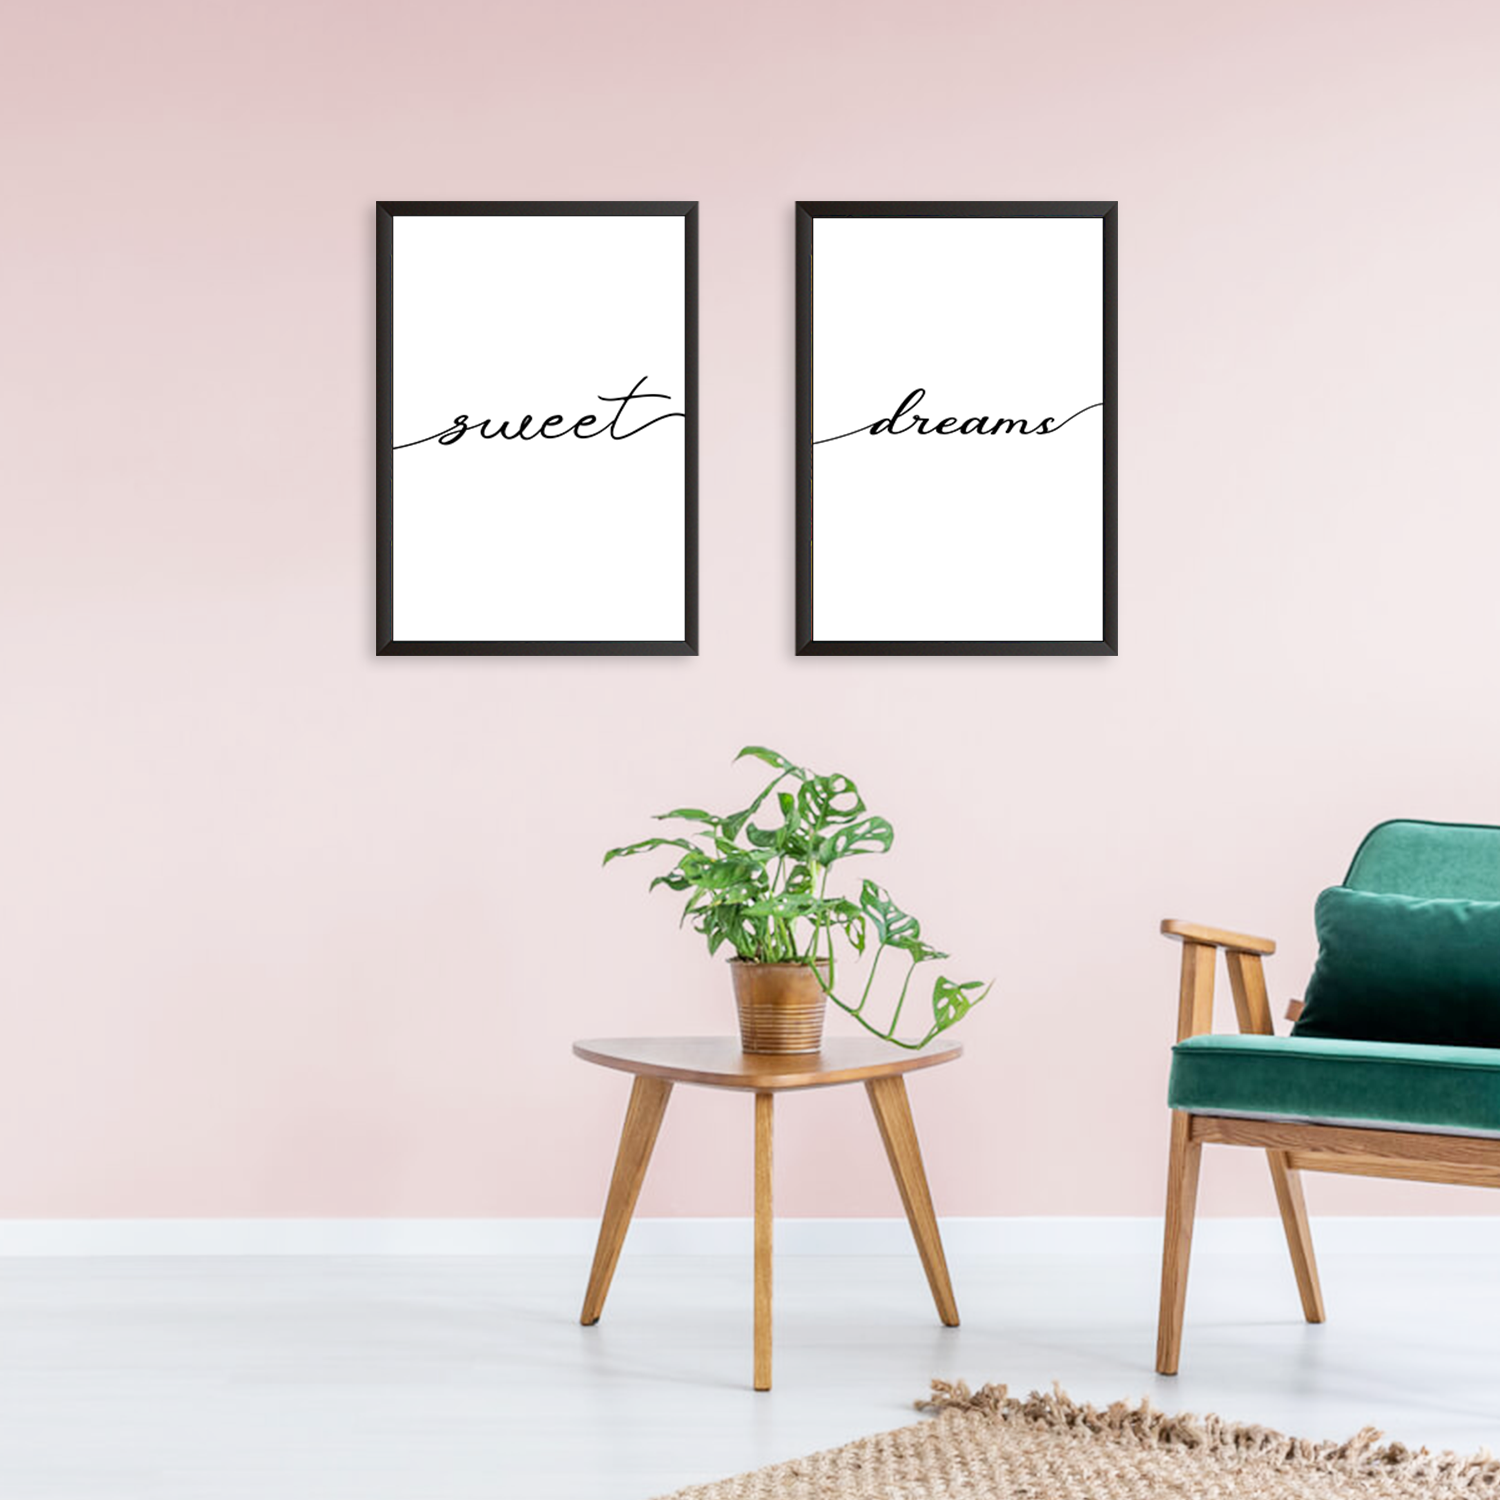 Sweet Dreams - Set of 2 Frames